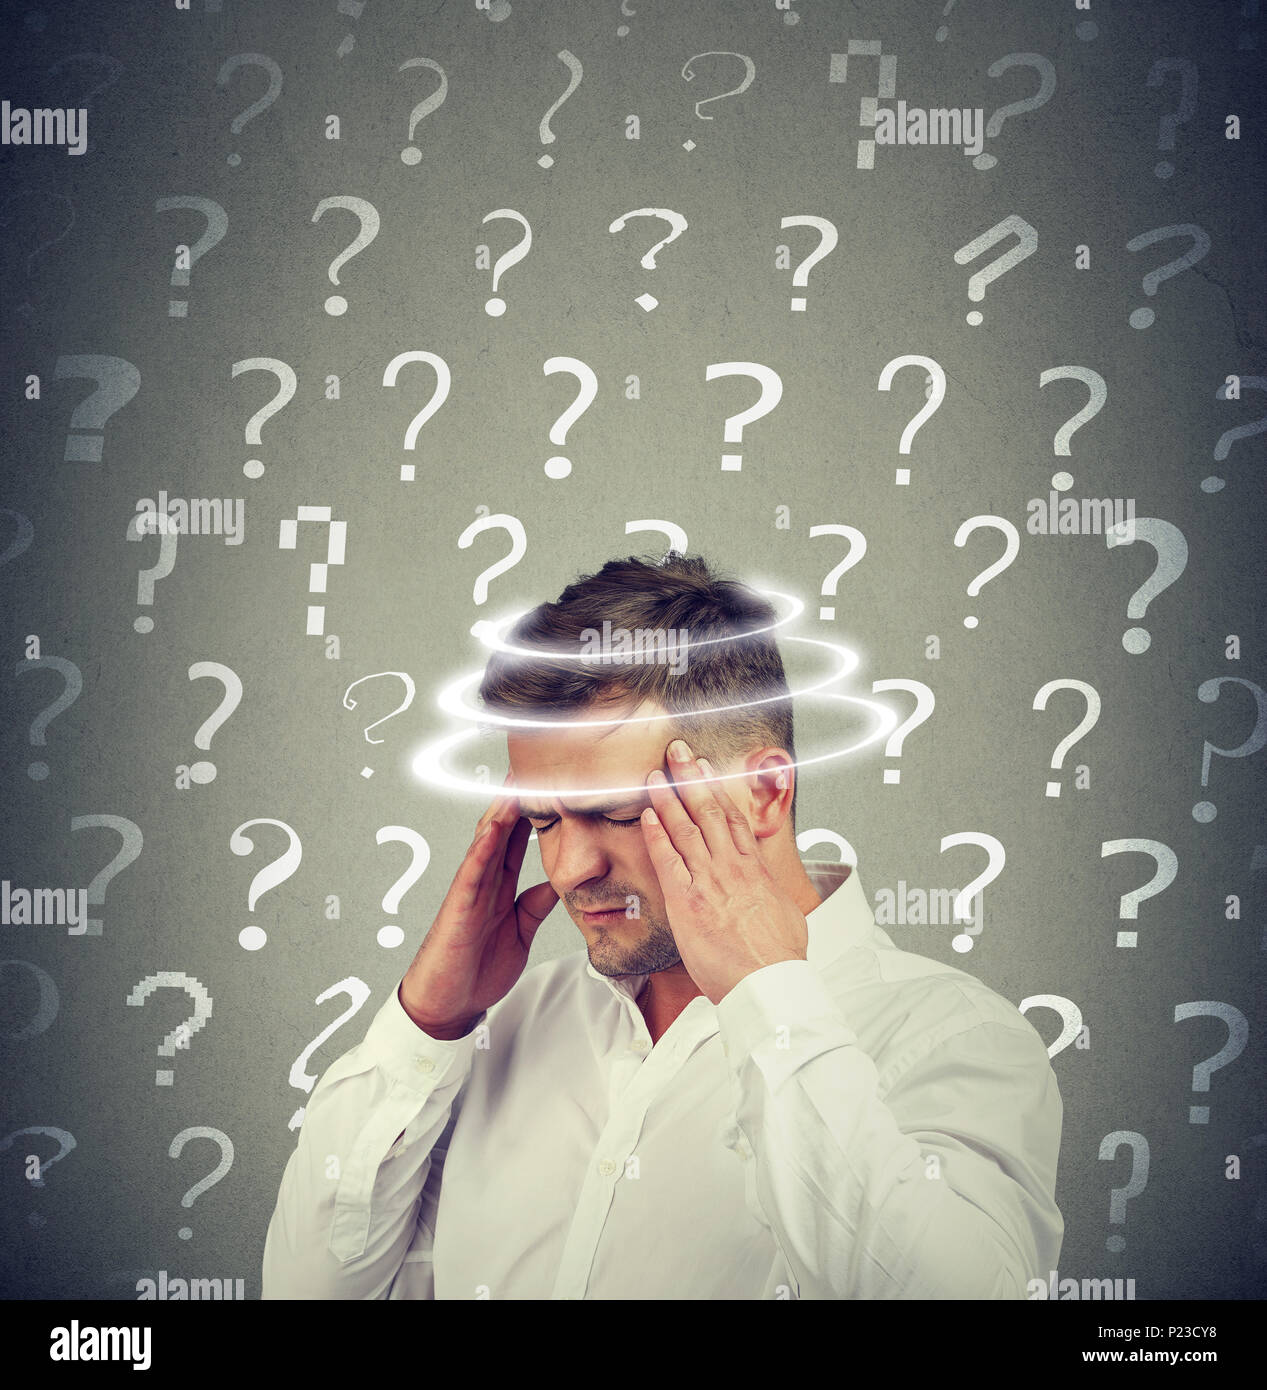 Conceptual shot of young man in shirt rubbing temples looking obsessed with plenty of questions in mind. - Stock Image